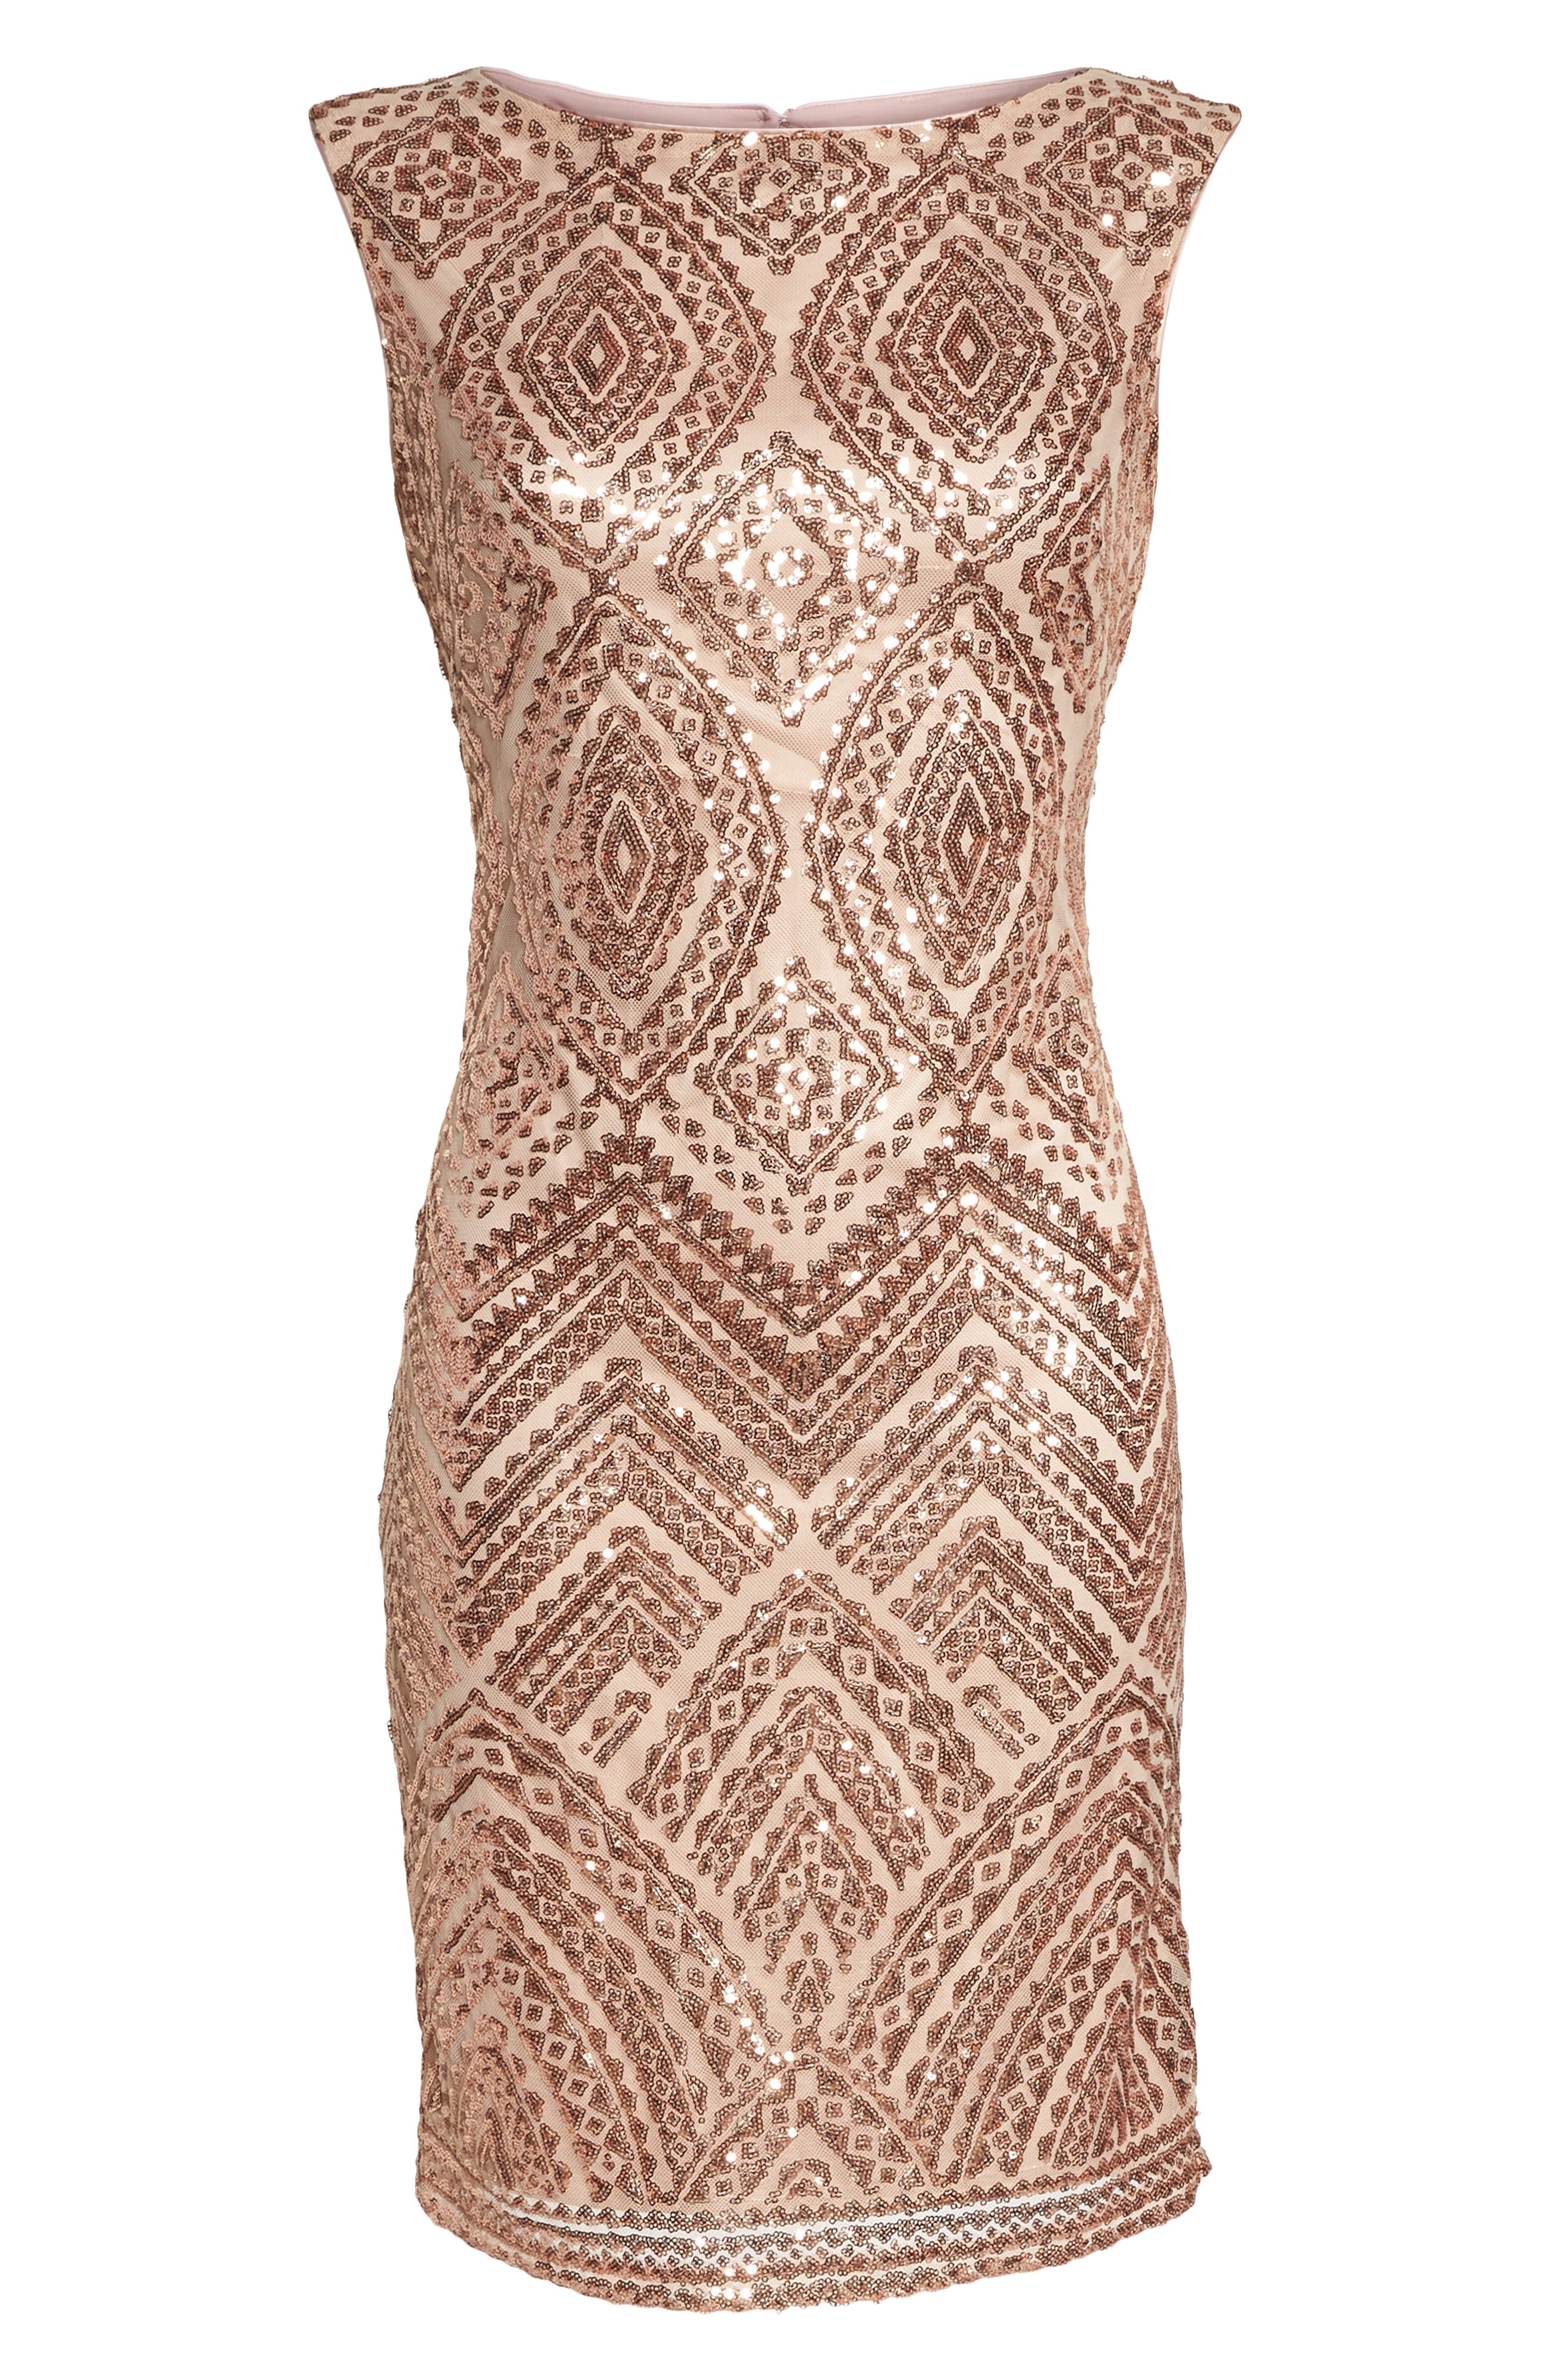 VINCE CAMUTO,                             Sequin Embellished Cocktail Dress,                             Alternate thumbnail 7, color,                             254